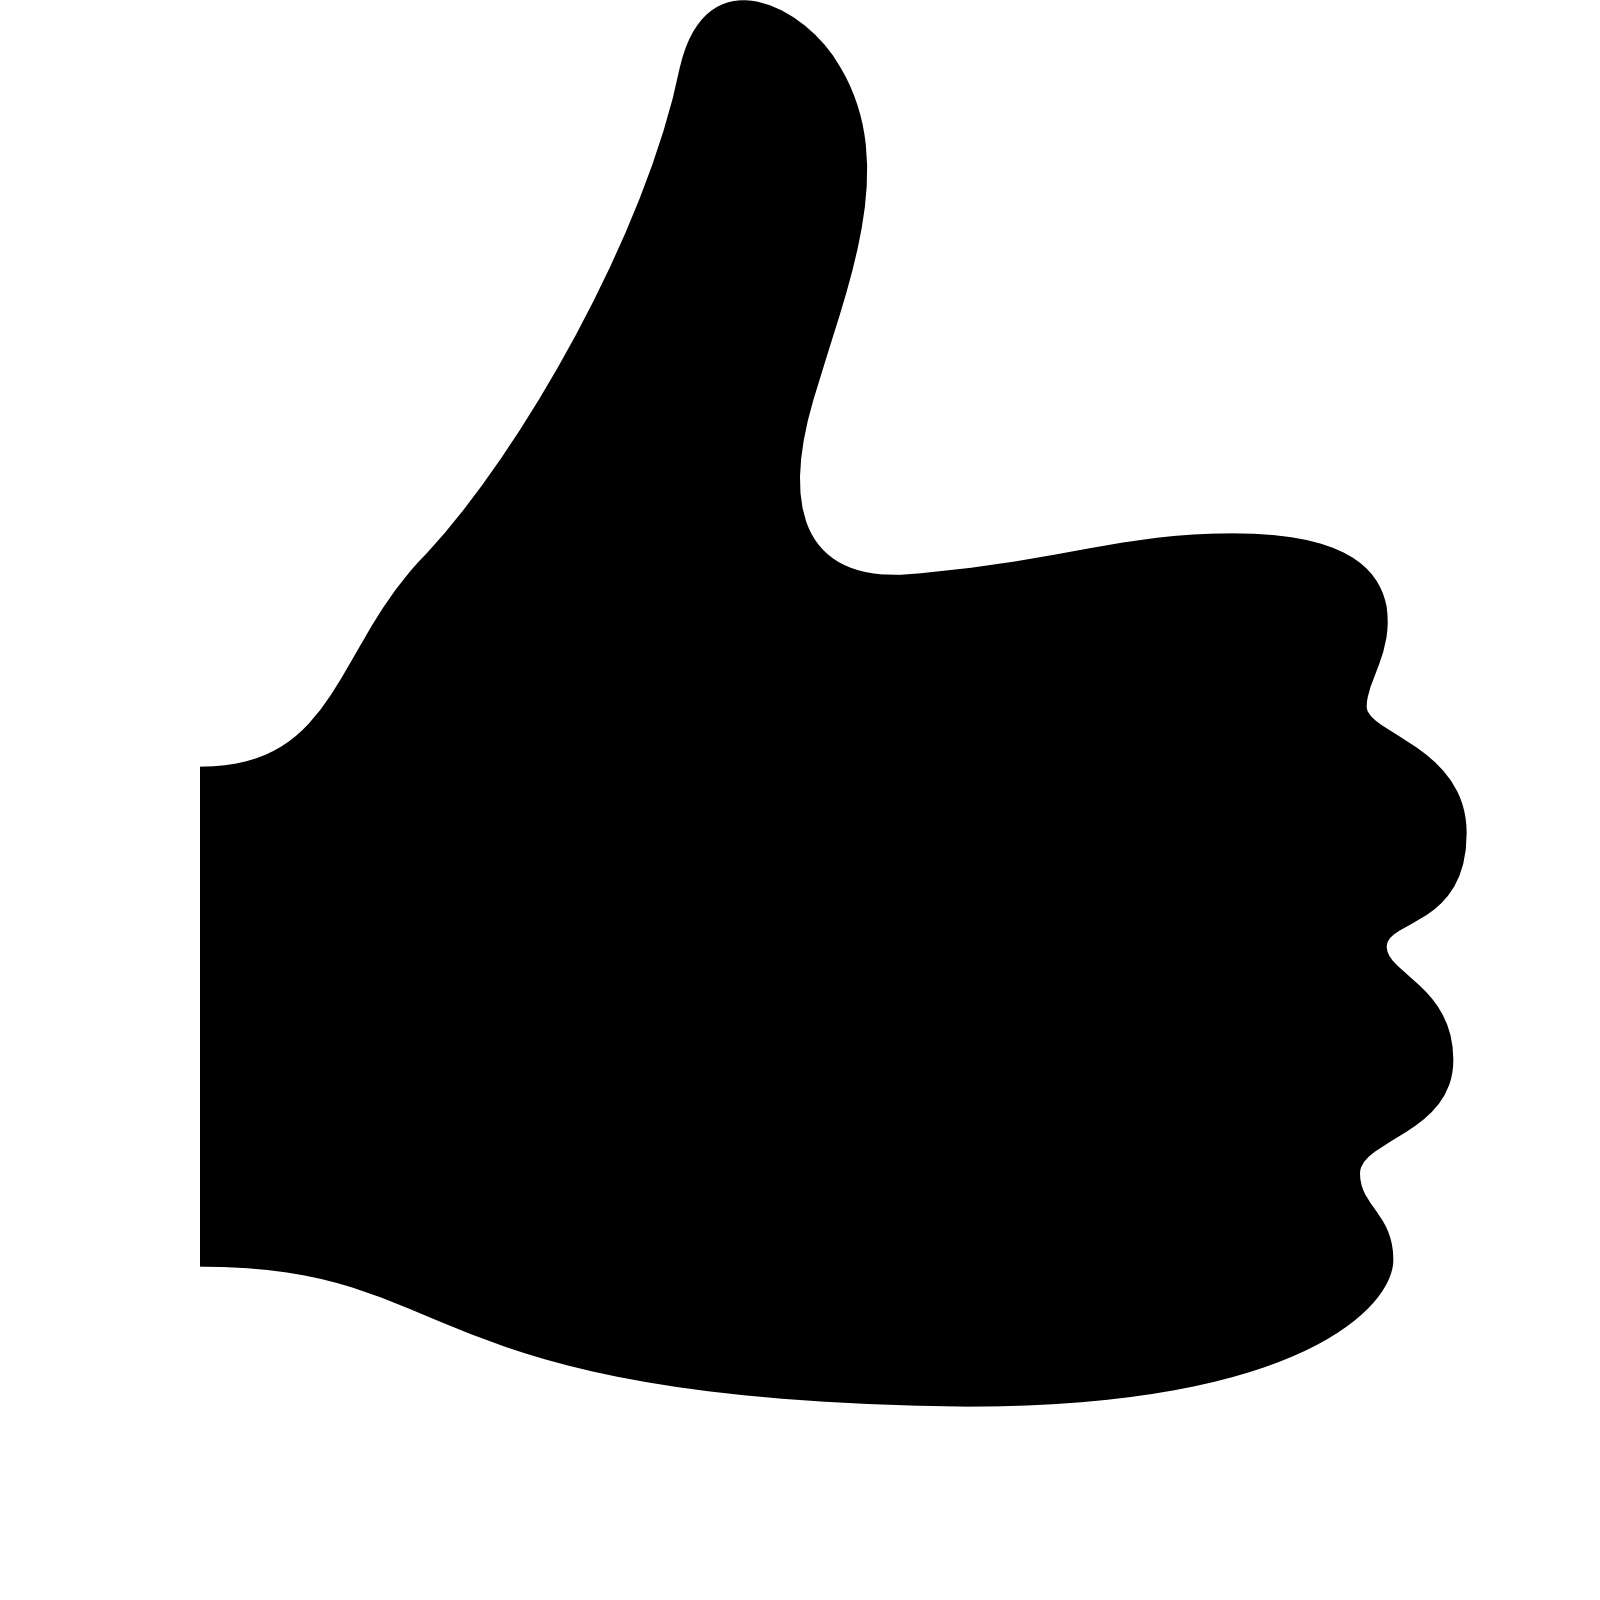 Thumbs clipart achieved. Up icon down emoji